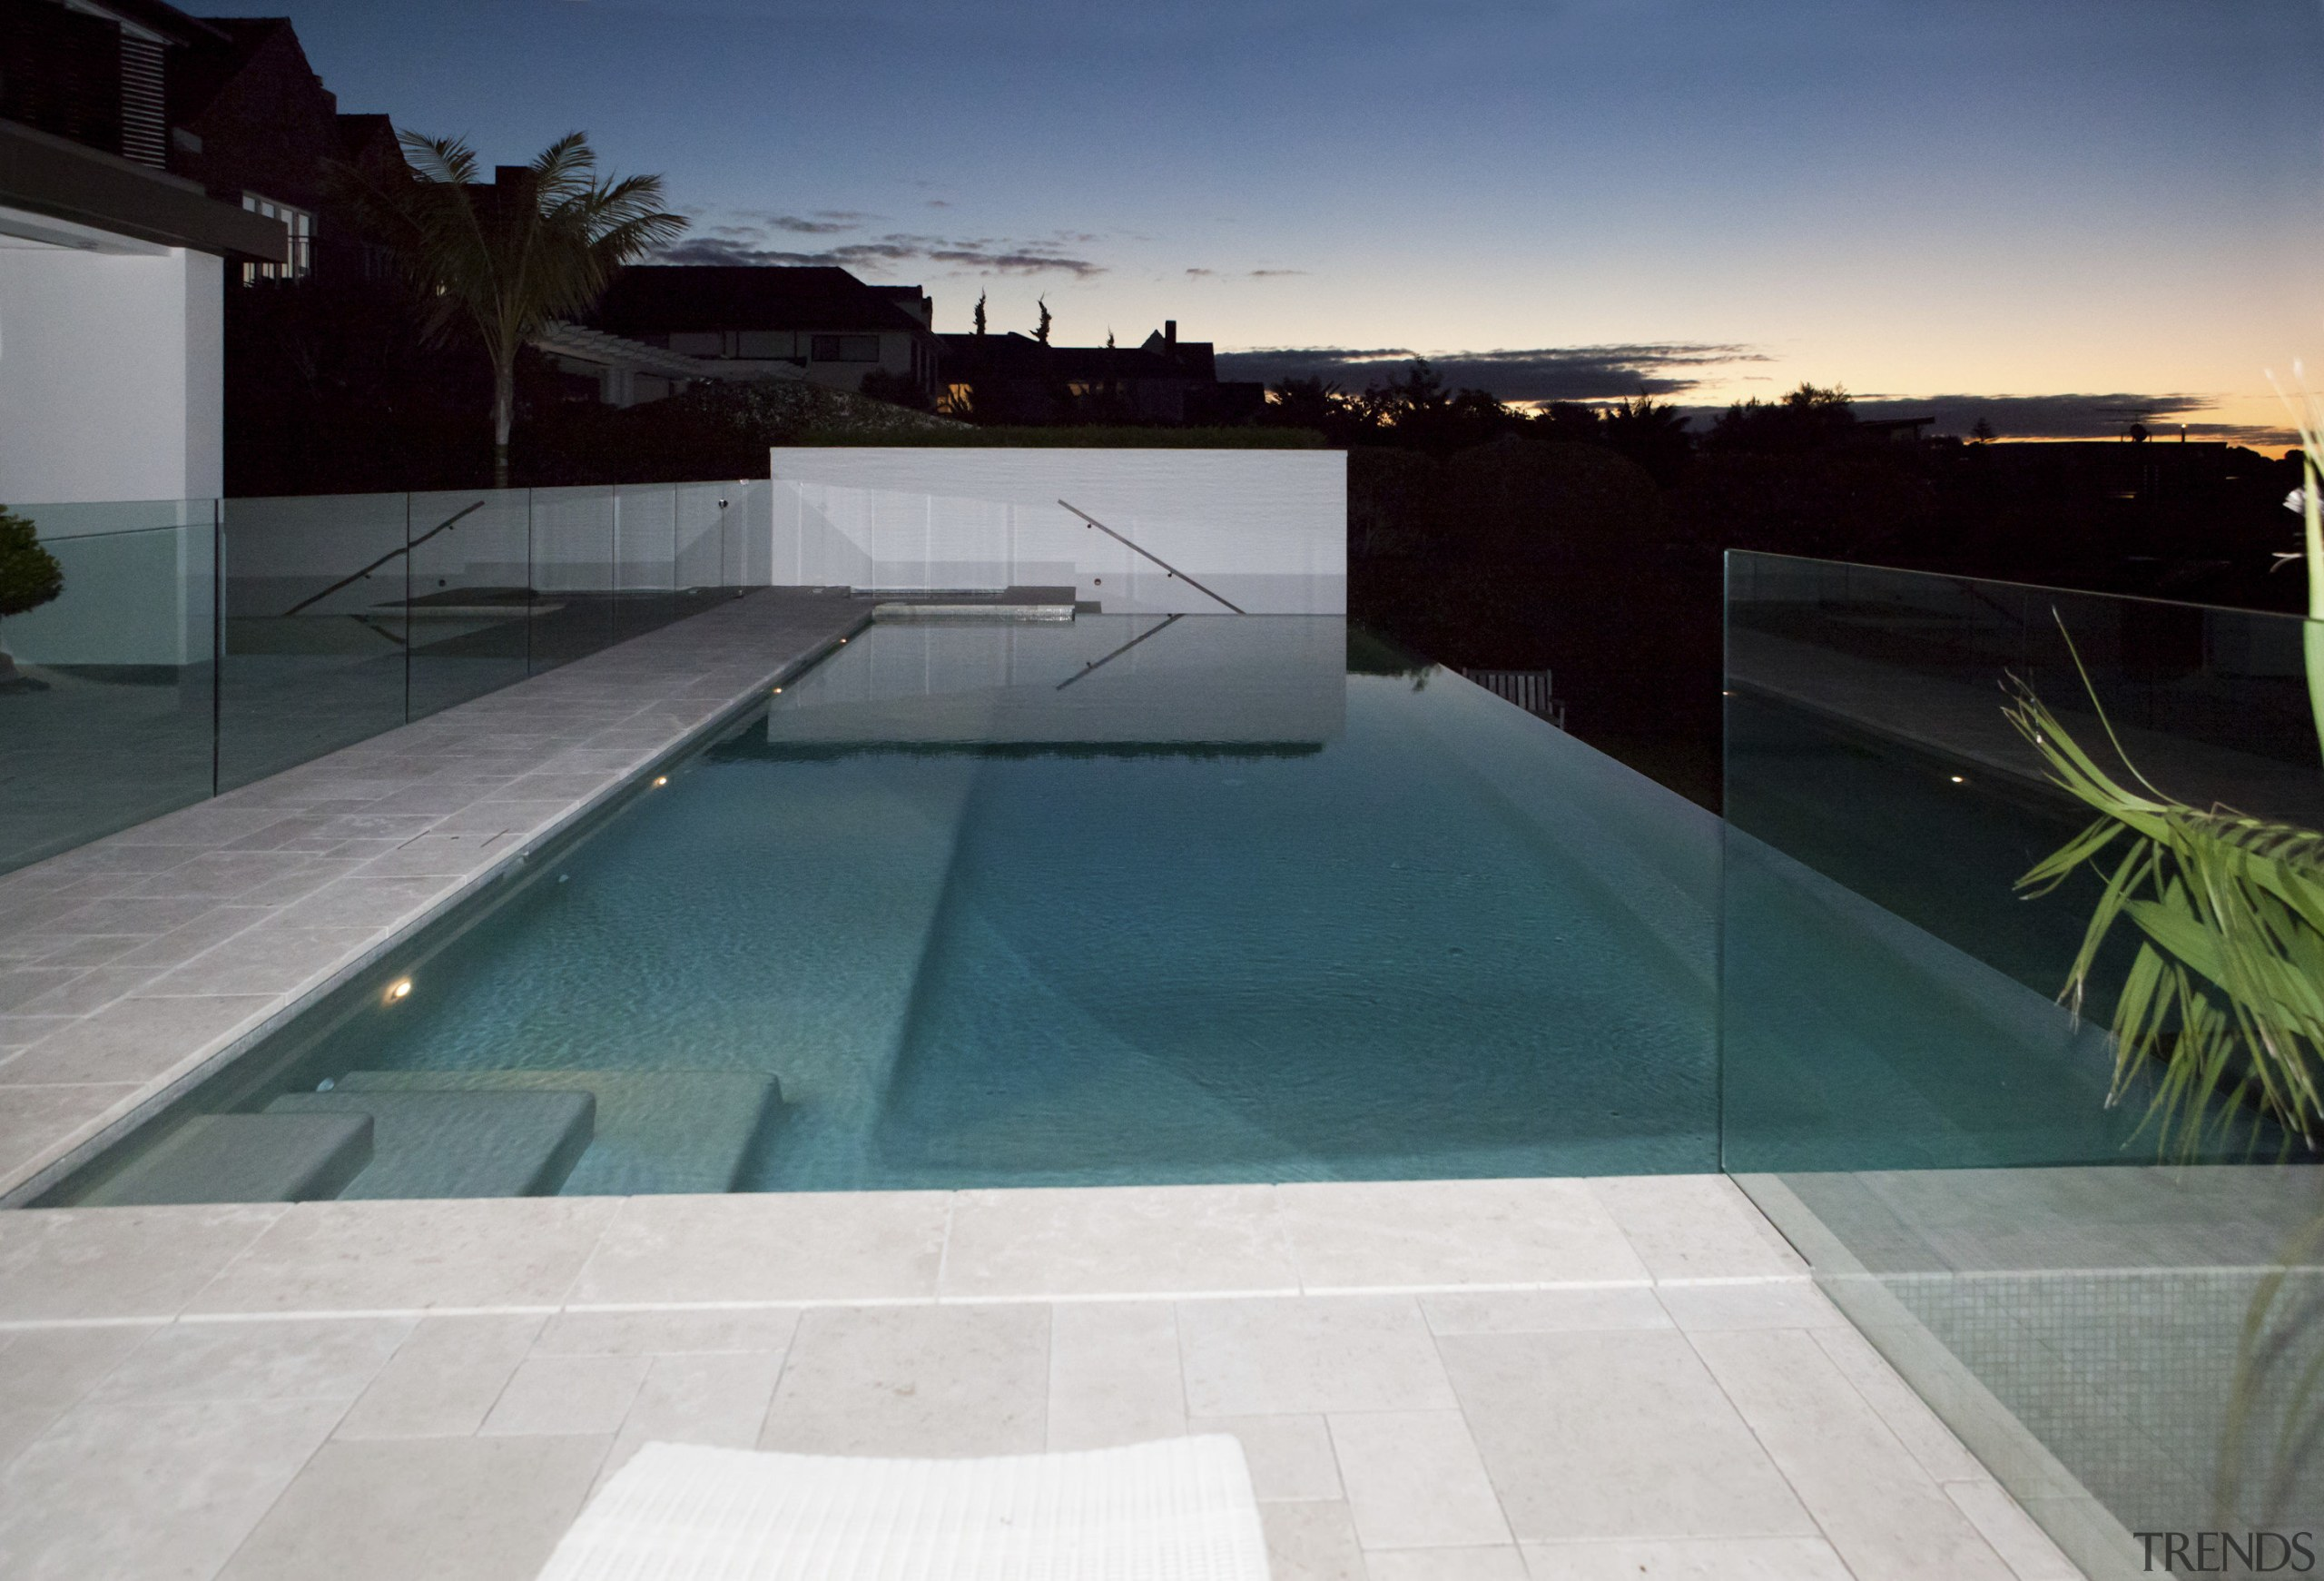 Pool area. - architecture | estate | house architecture, estate, house, leisure, property, real estate, reflection, sky, swimming pool, water